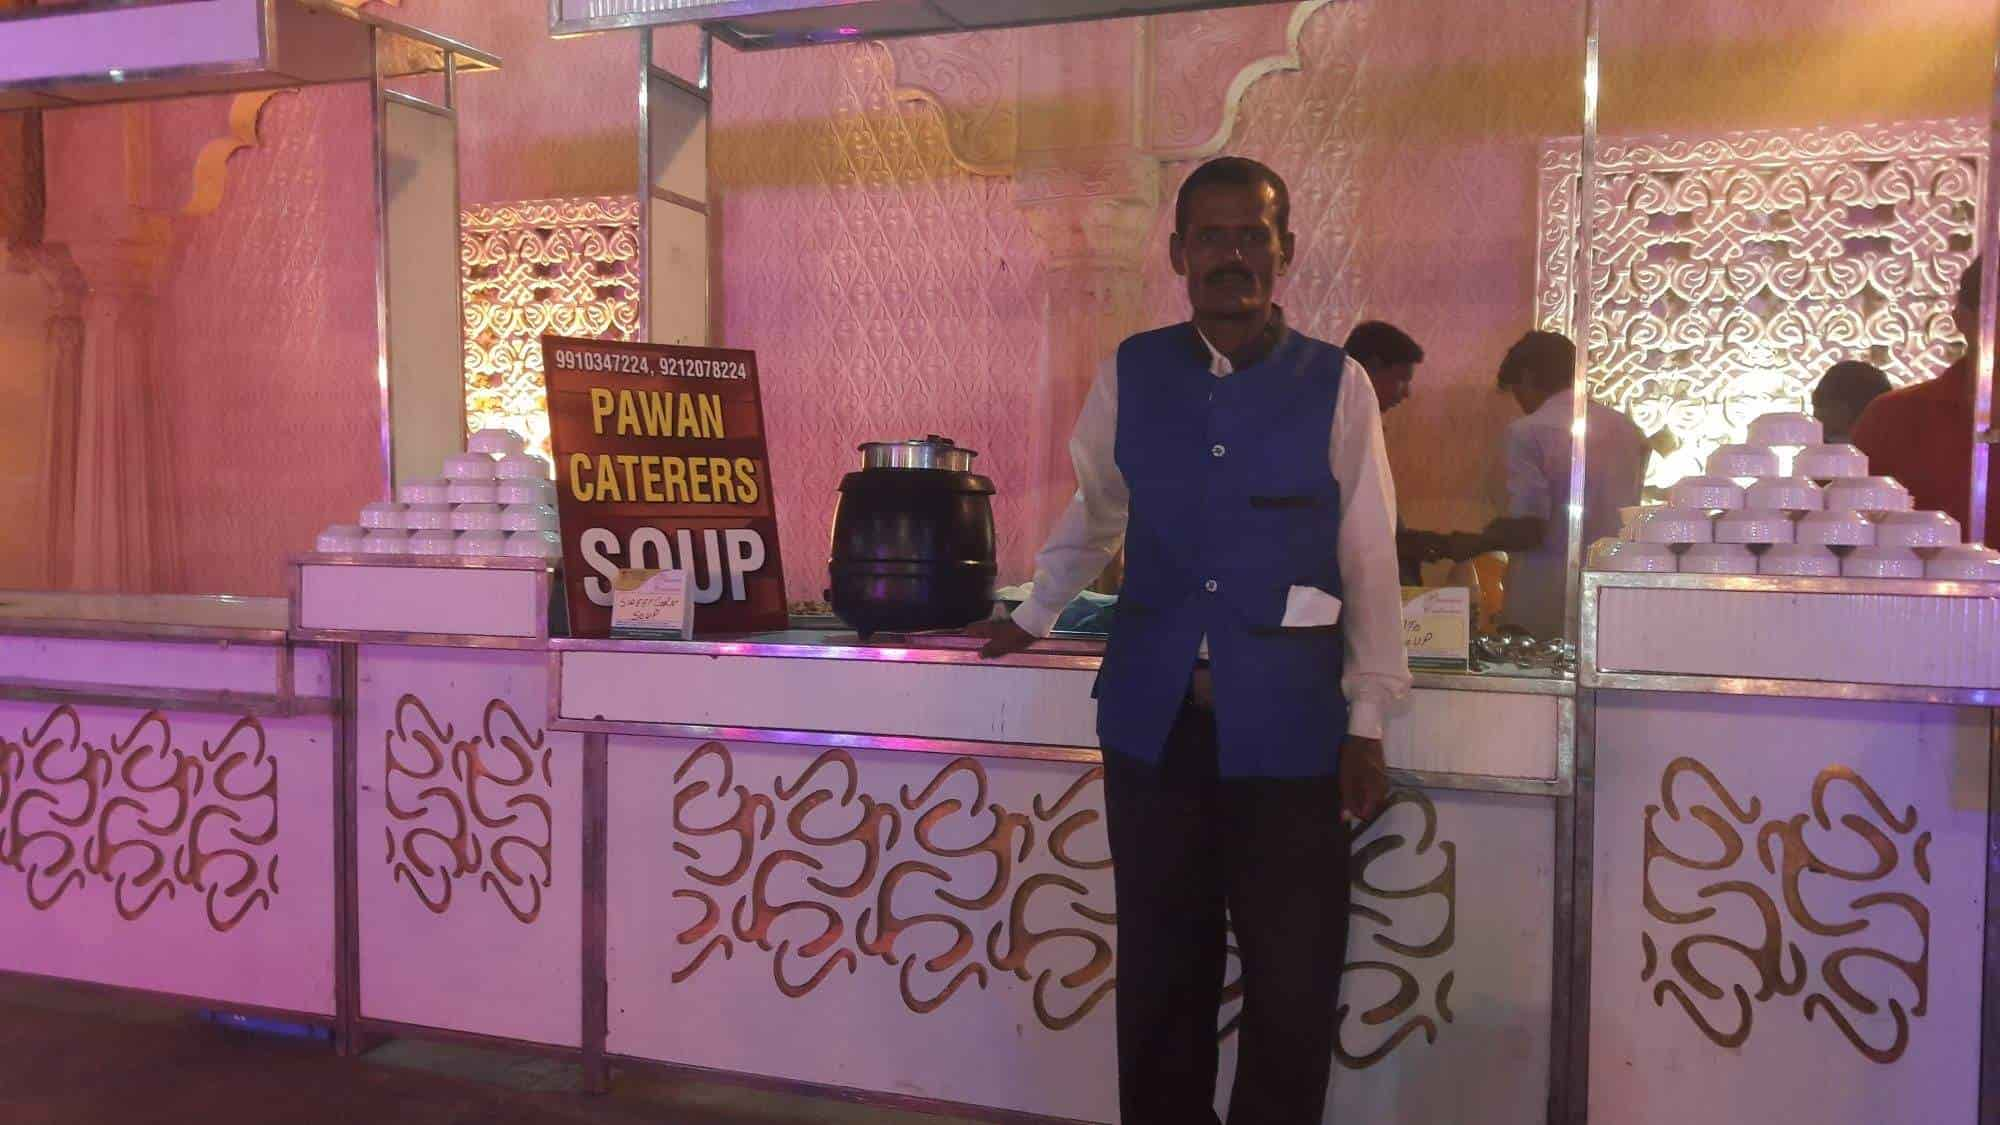 Pawan Caterers, Gurgaon Sector 8 - Caterers in Delhi - Justdial